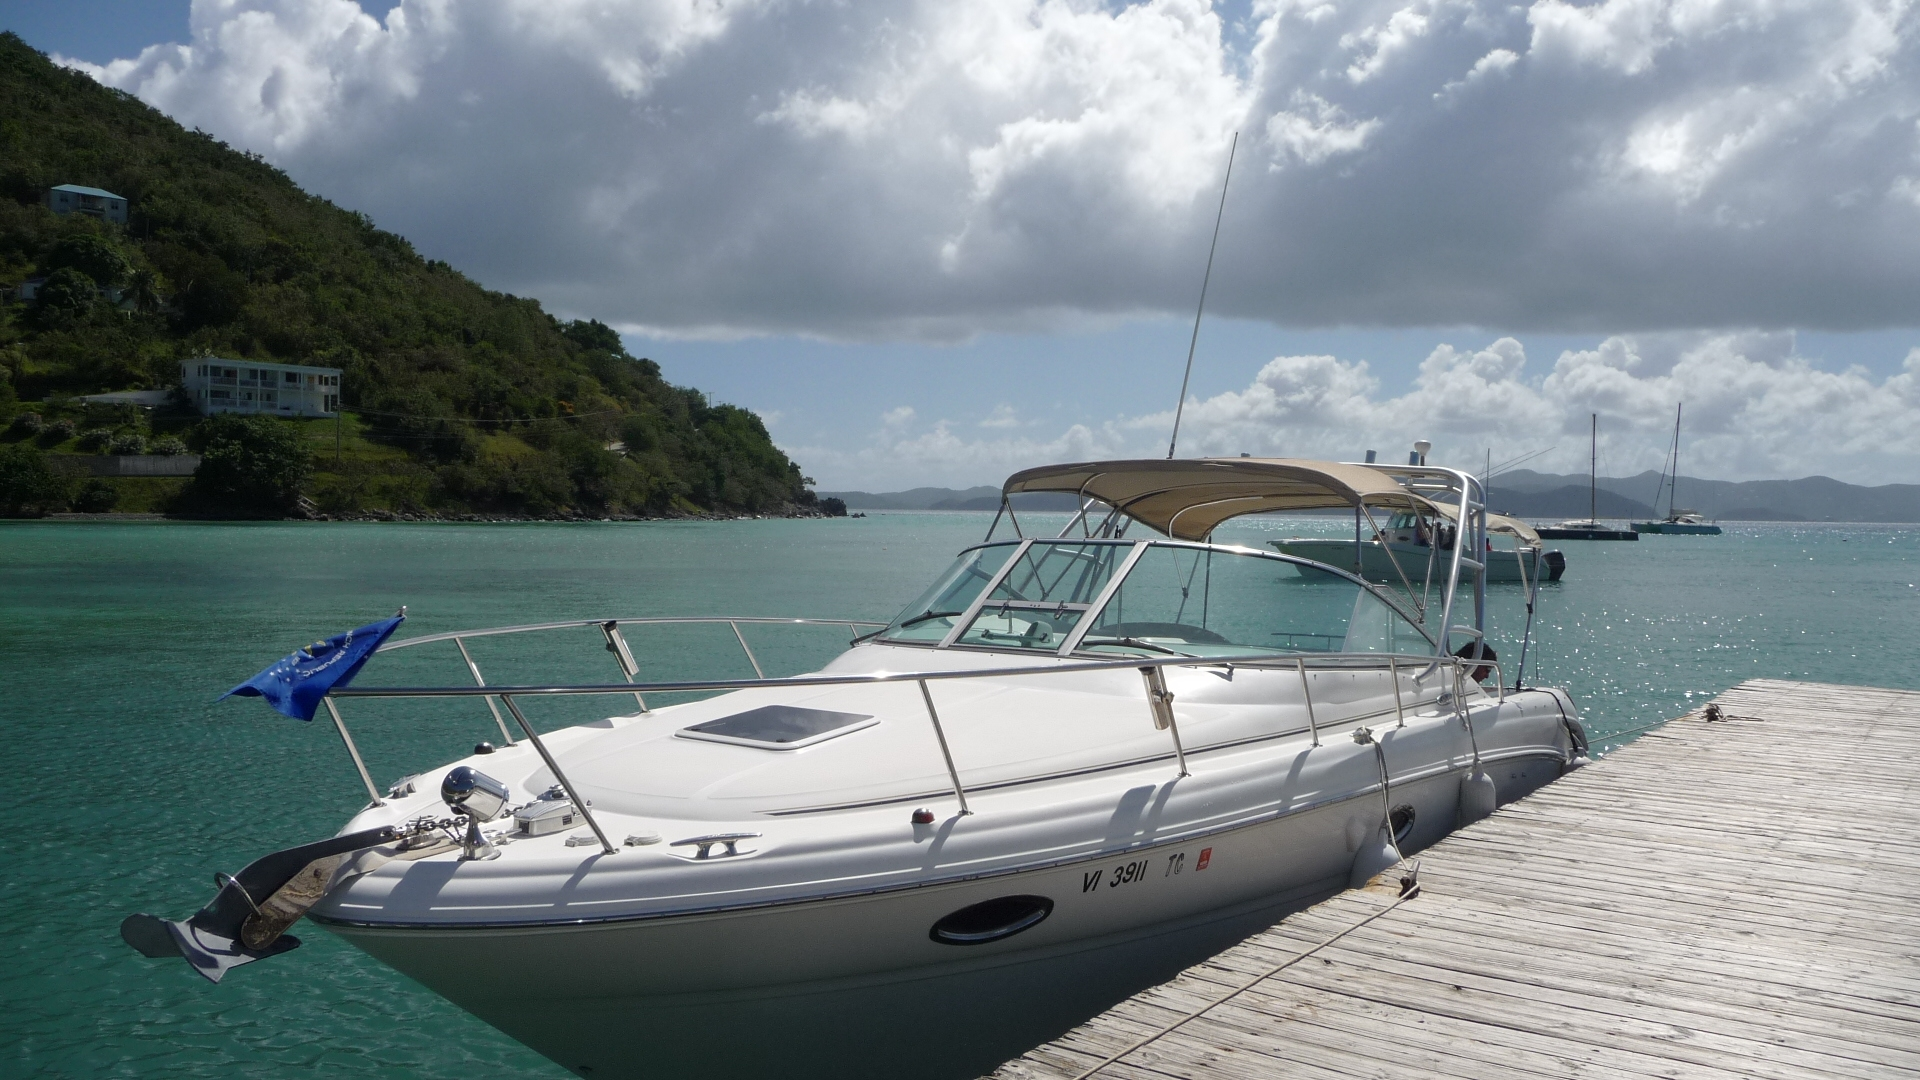 Our 31' SeaRay power-cruiser with luxury cabin and extended swim platform is ideal for exploring our pristine waters and majestic islands